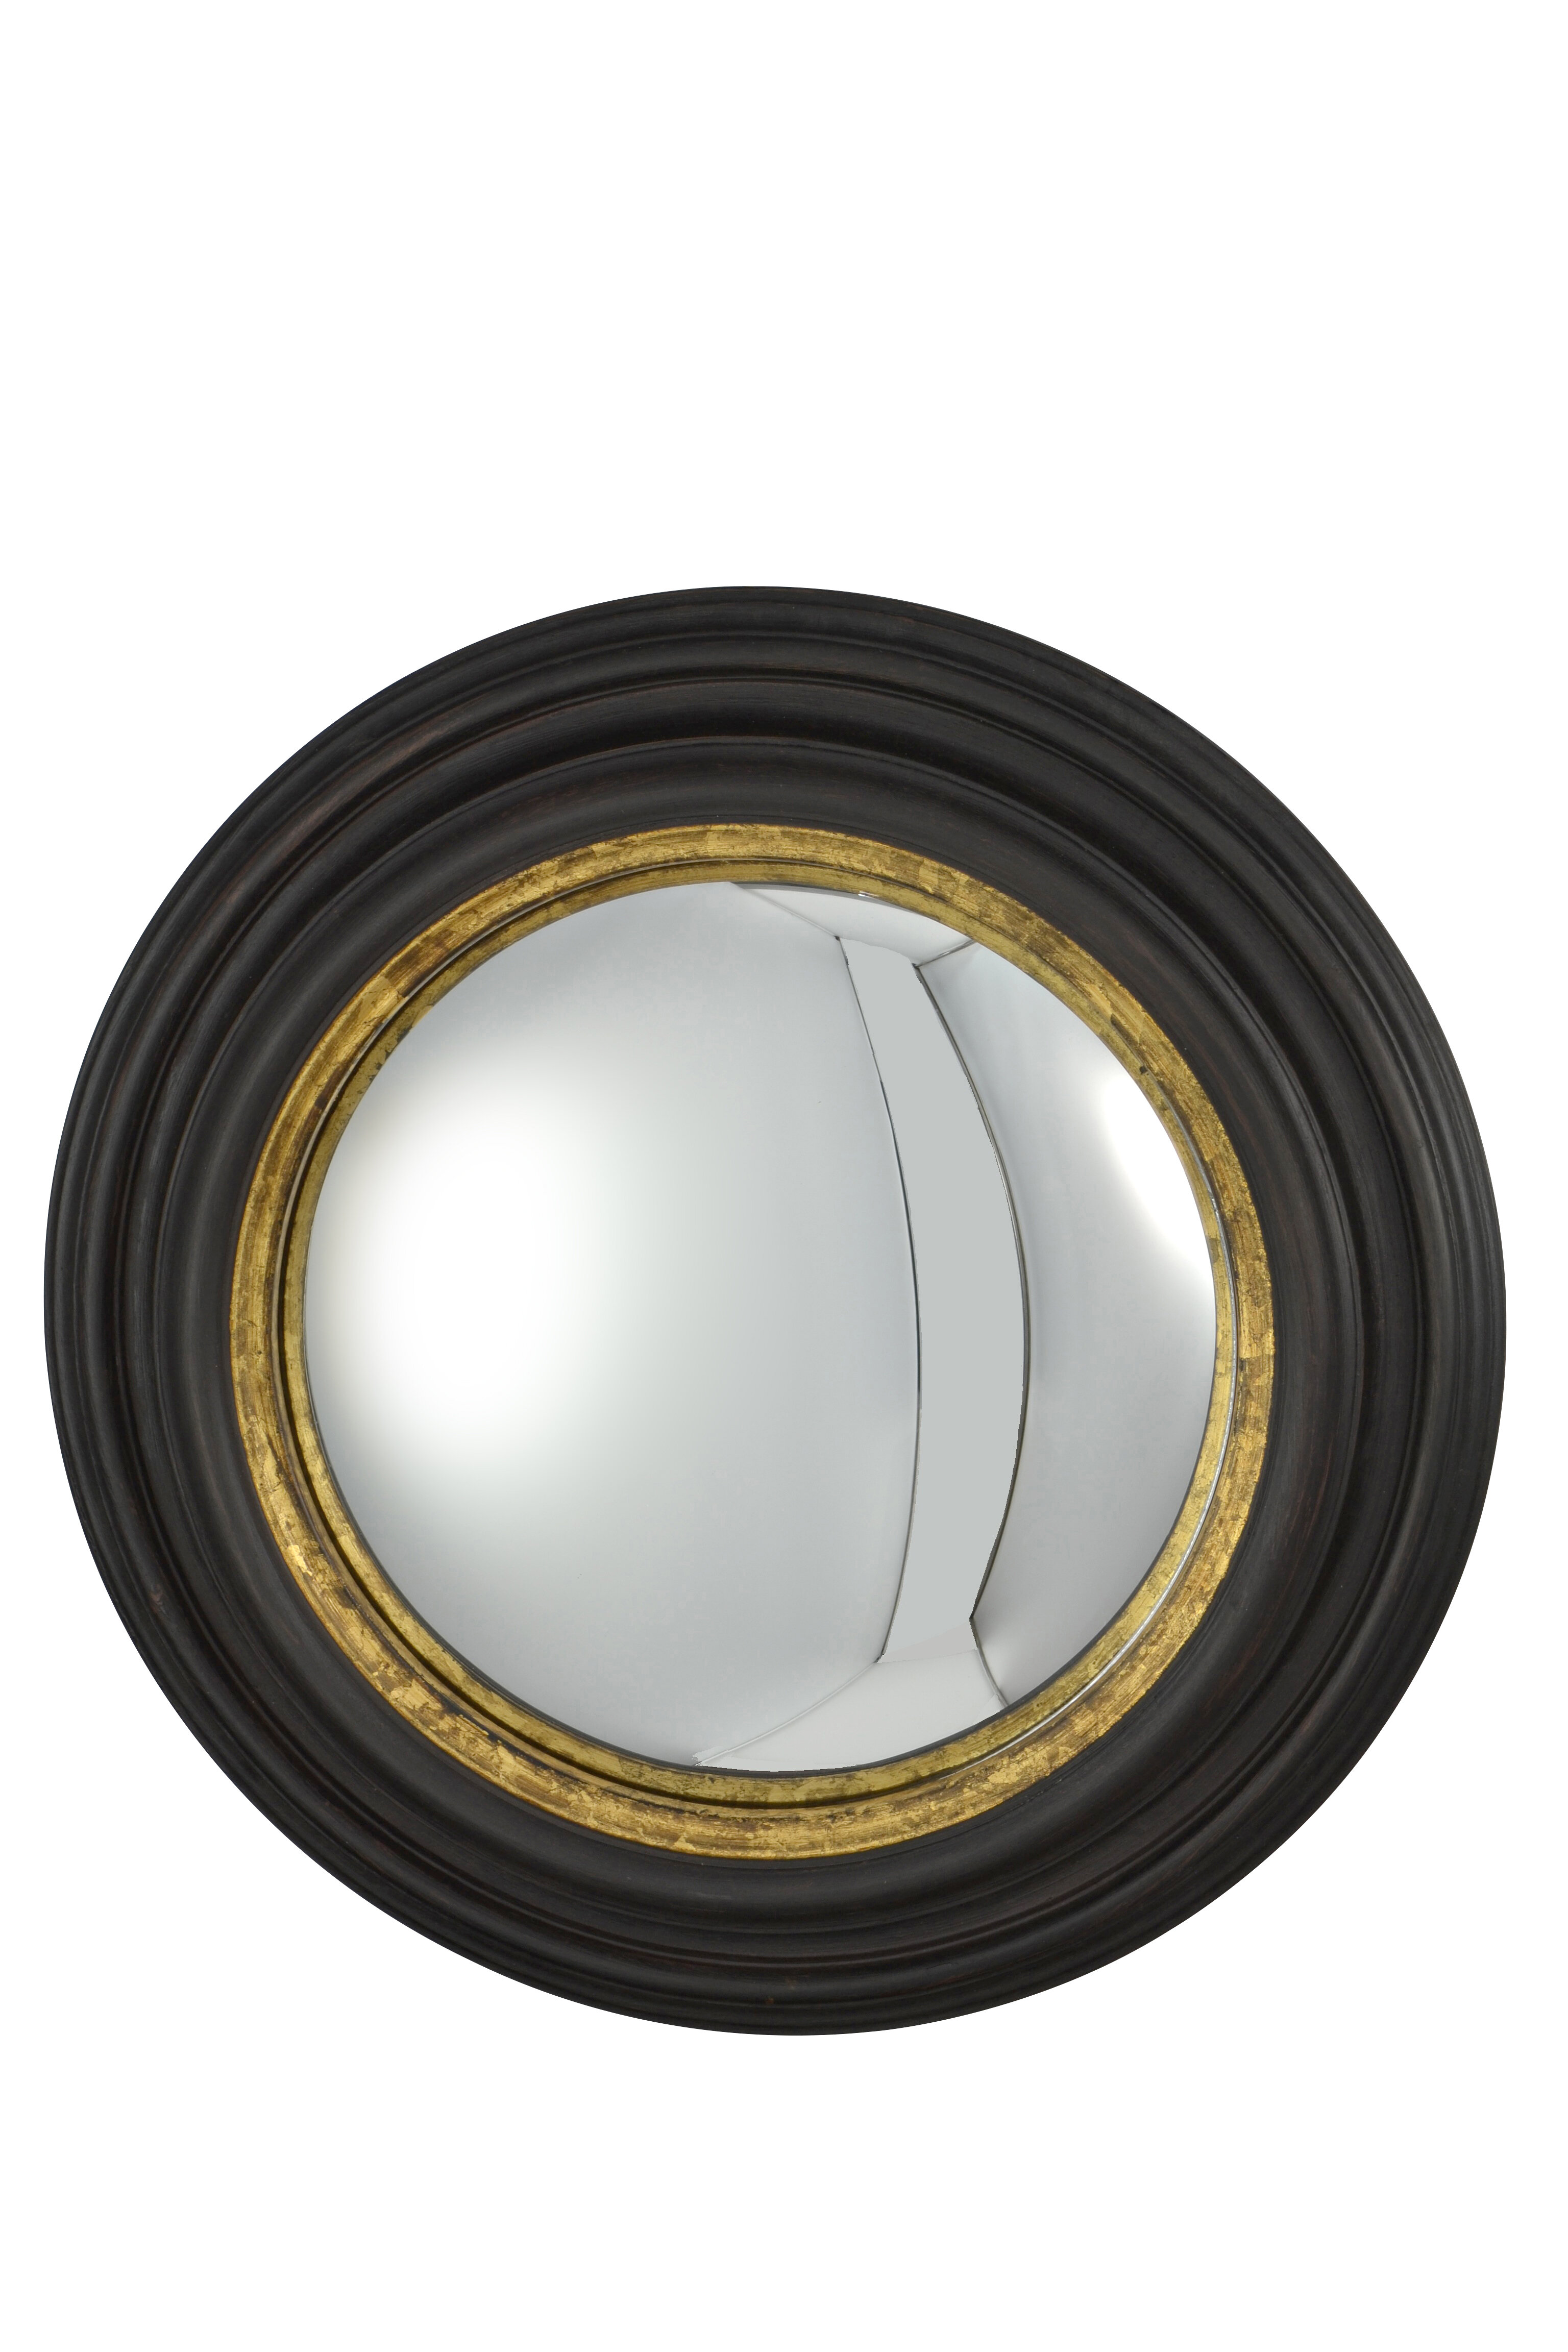 Abrahamic Vintage Wall Accent Mirror